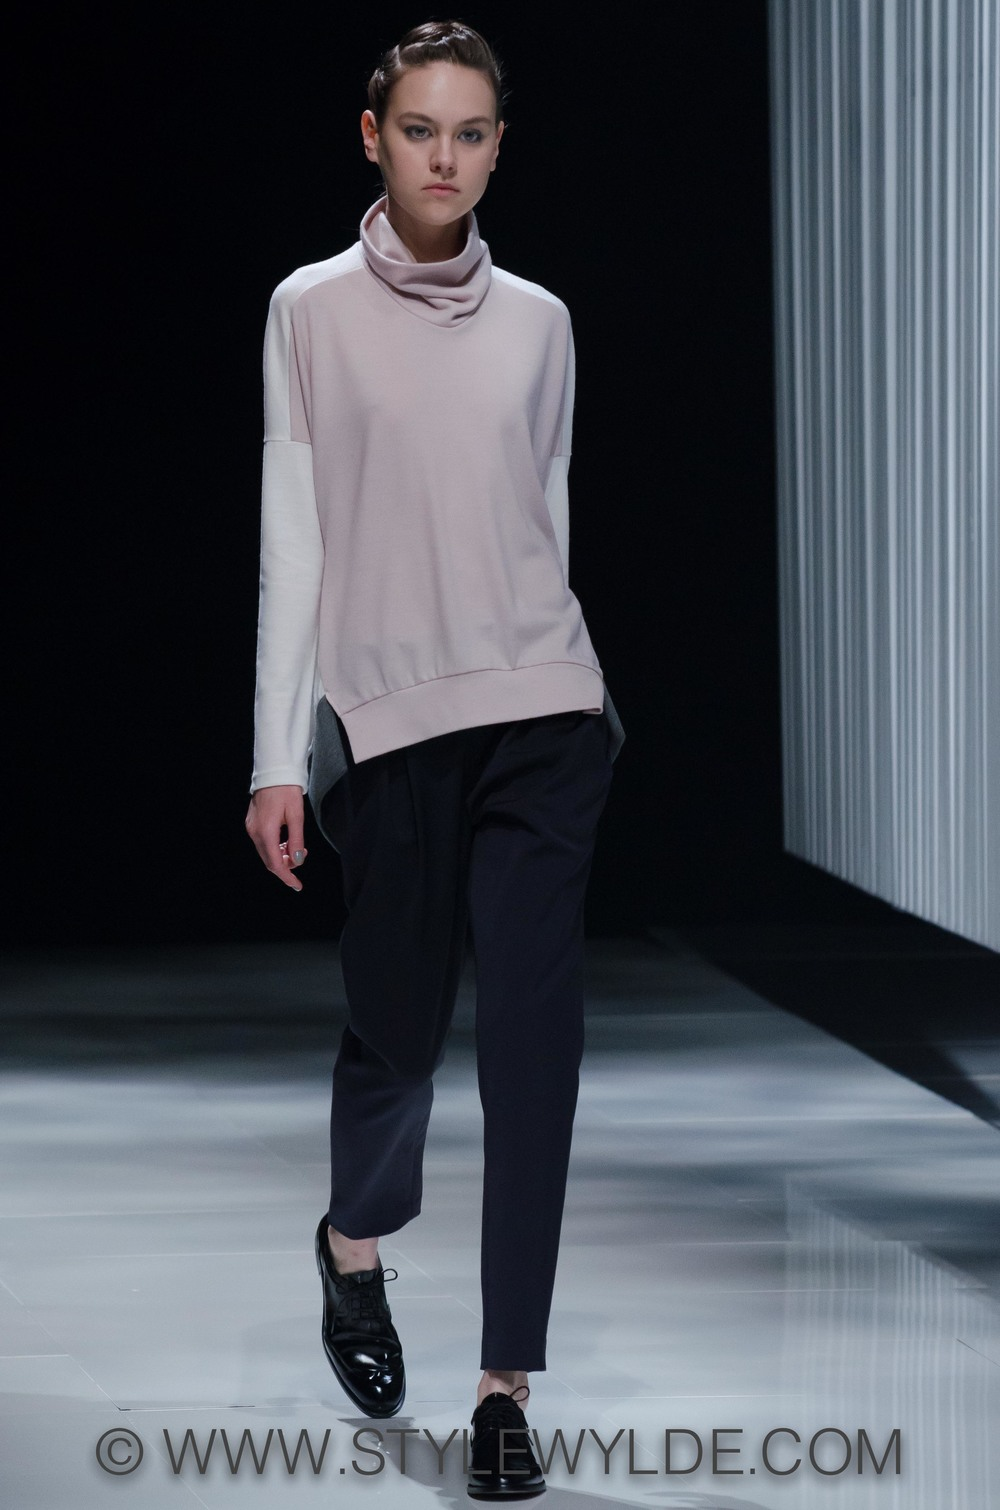 StyleWylde_Ujoh_AW14_story (1 of 1)-4.jpg